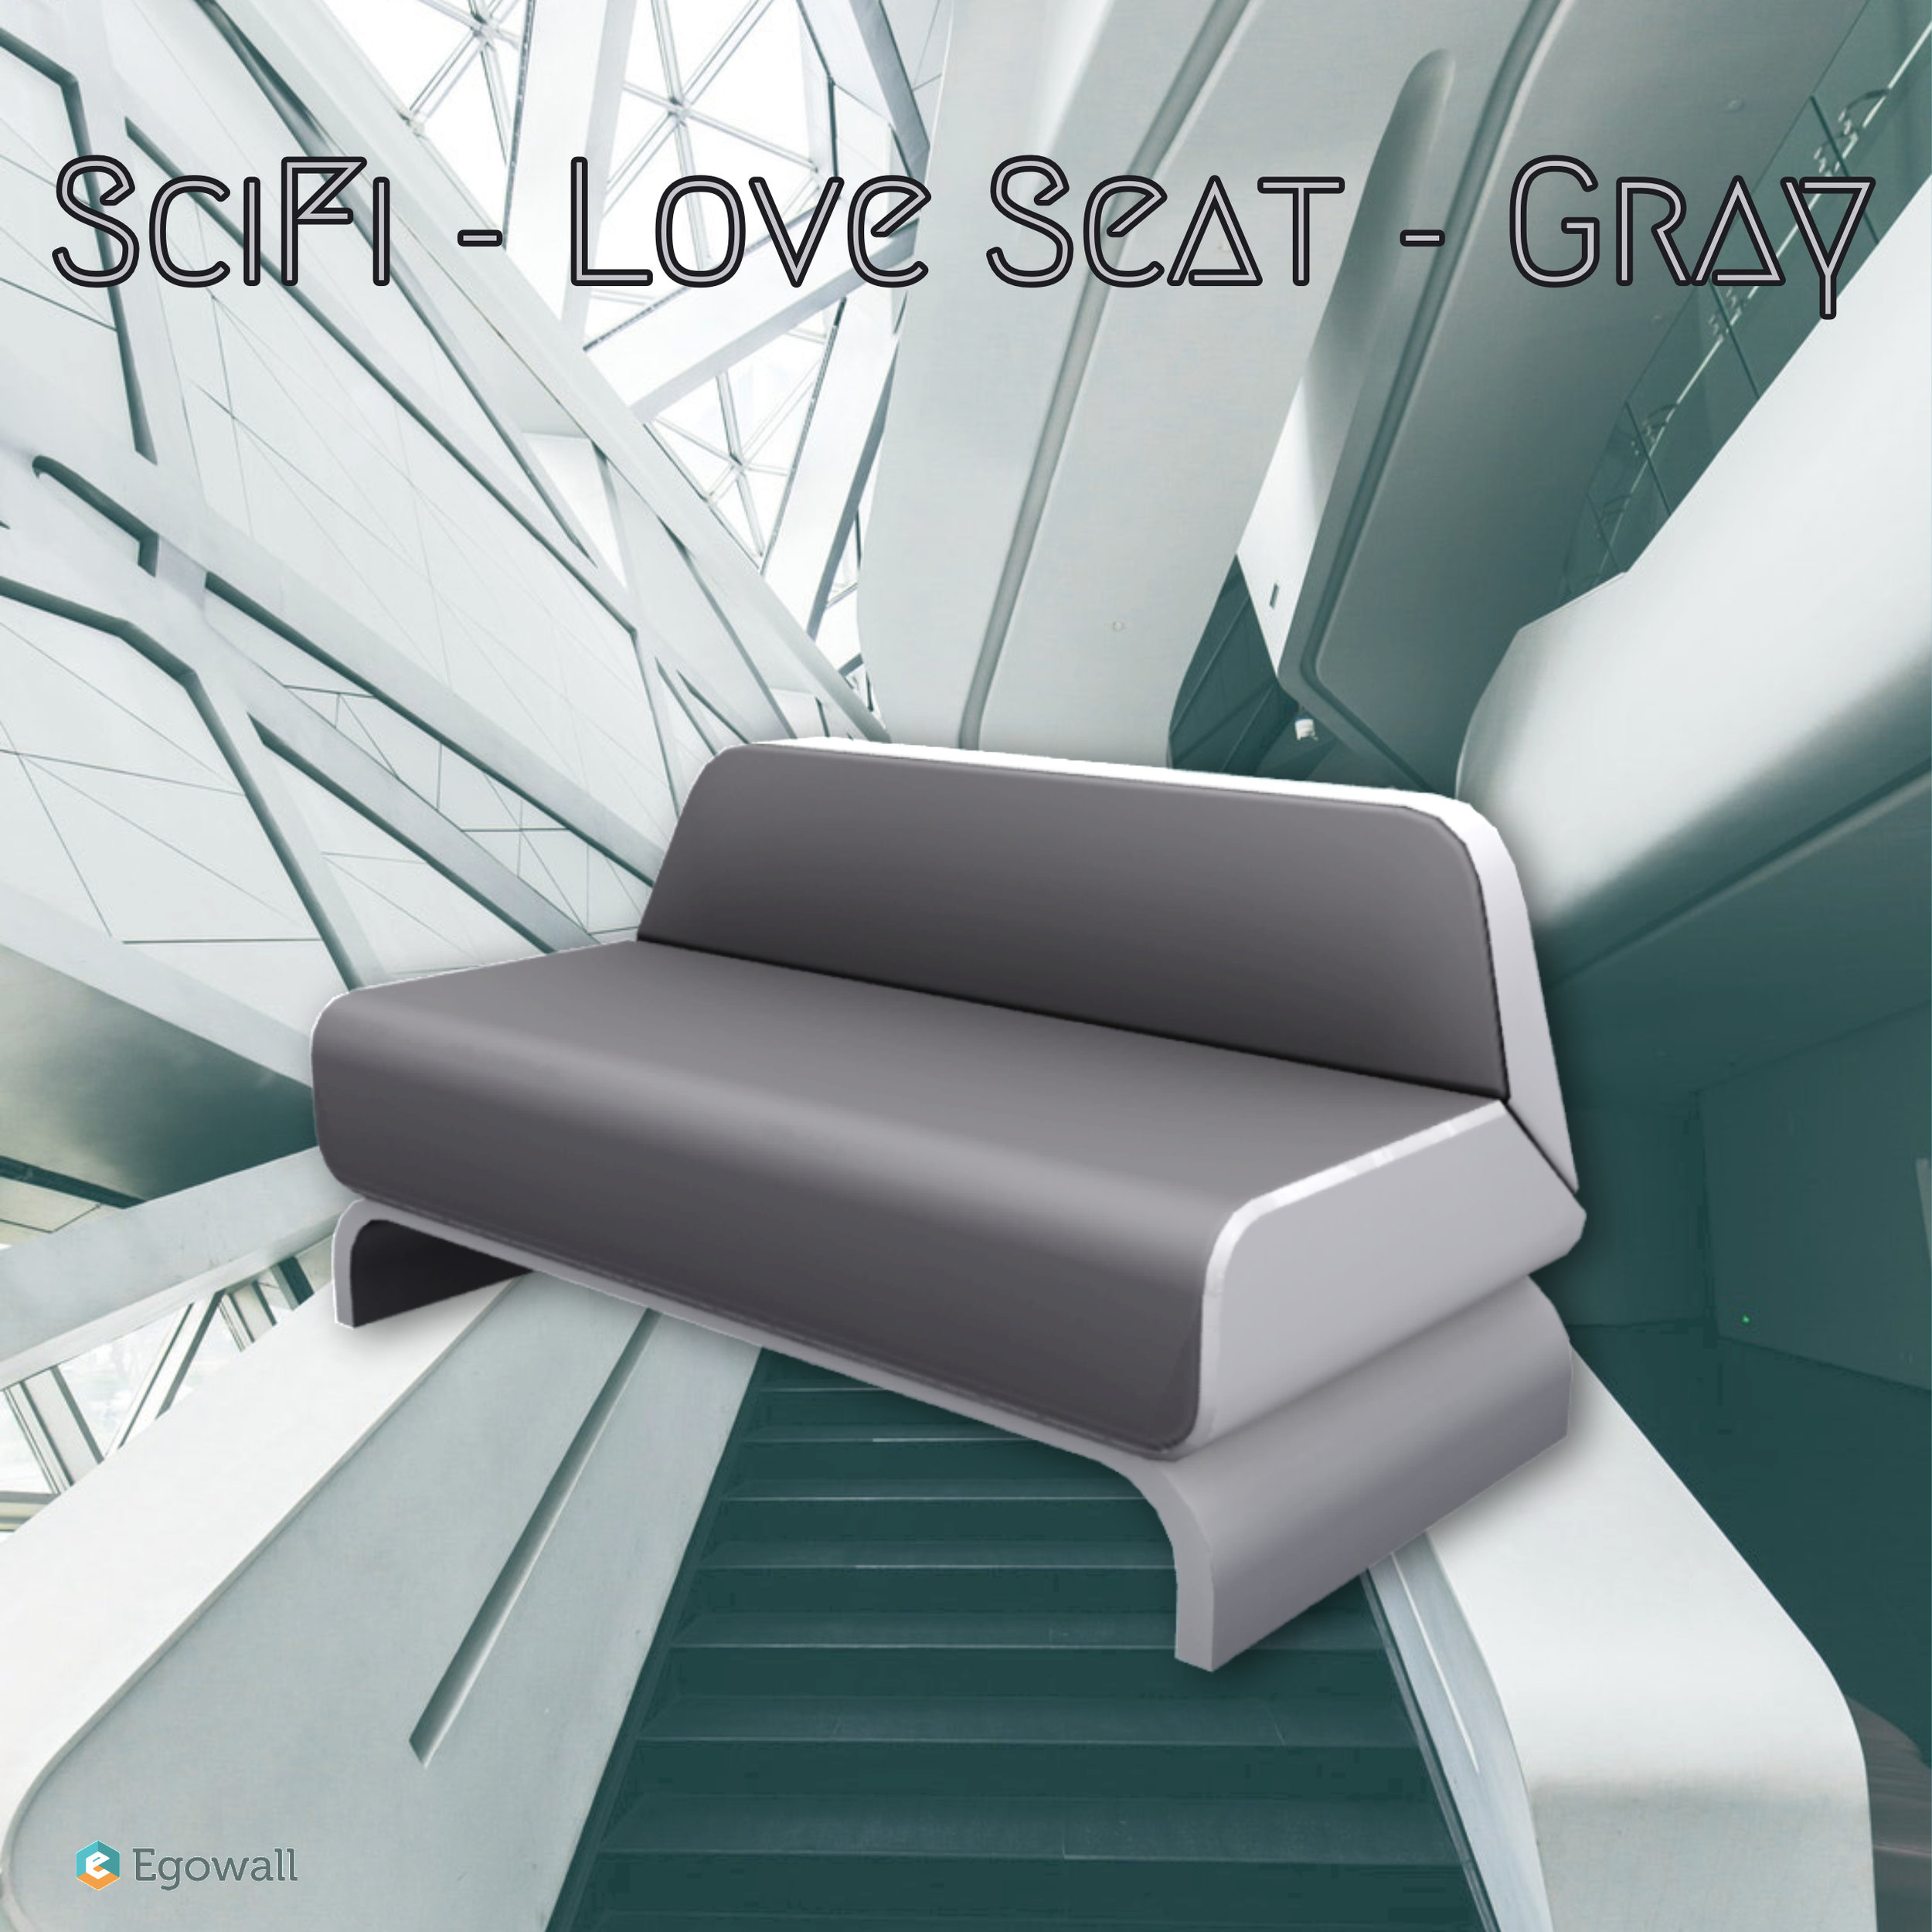 SciFi - Love Seat - Gray.Instagram.jpg